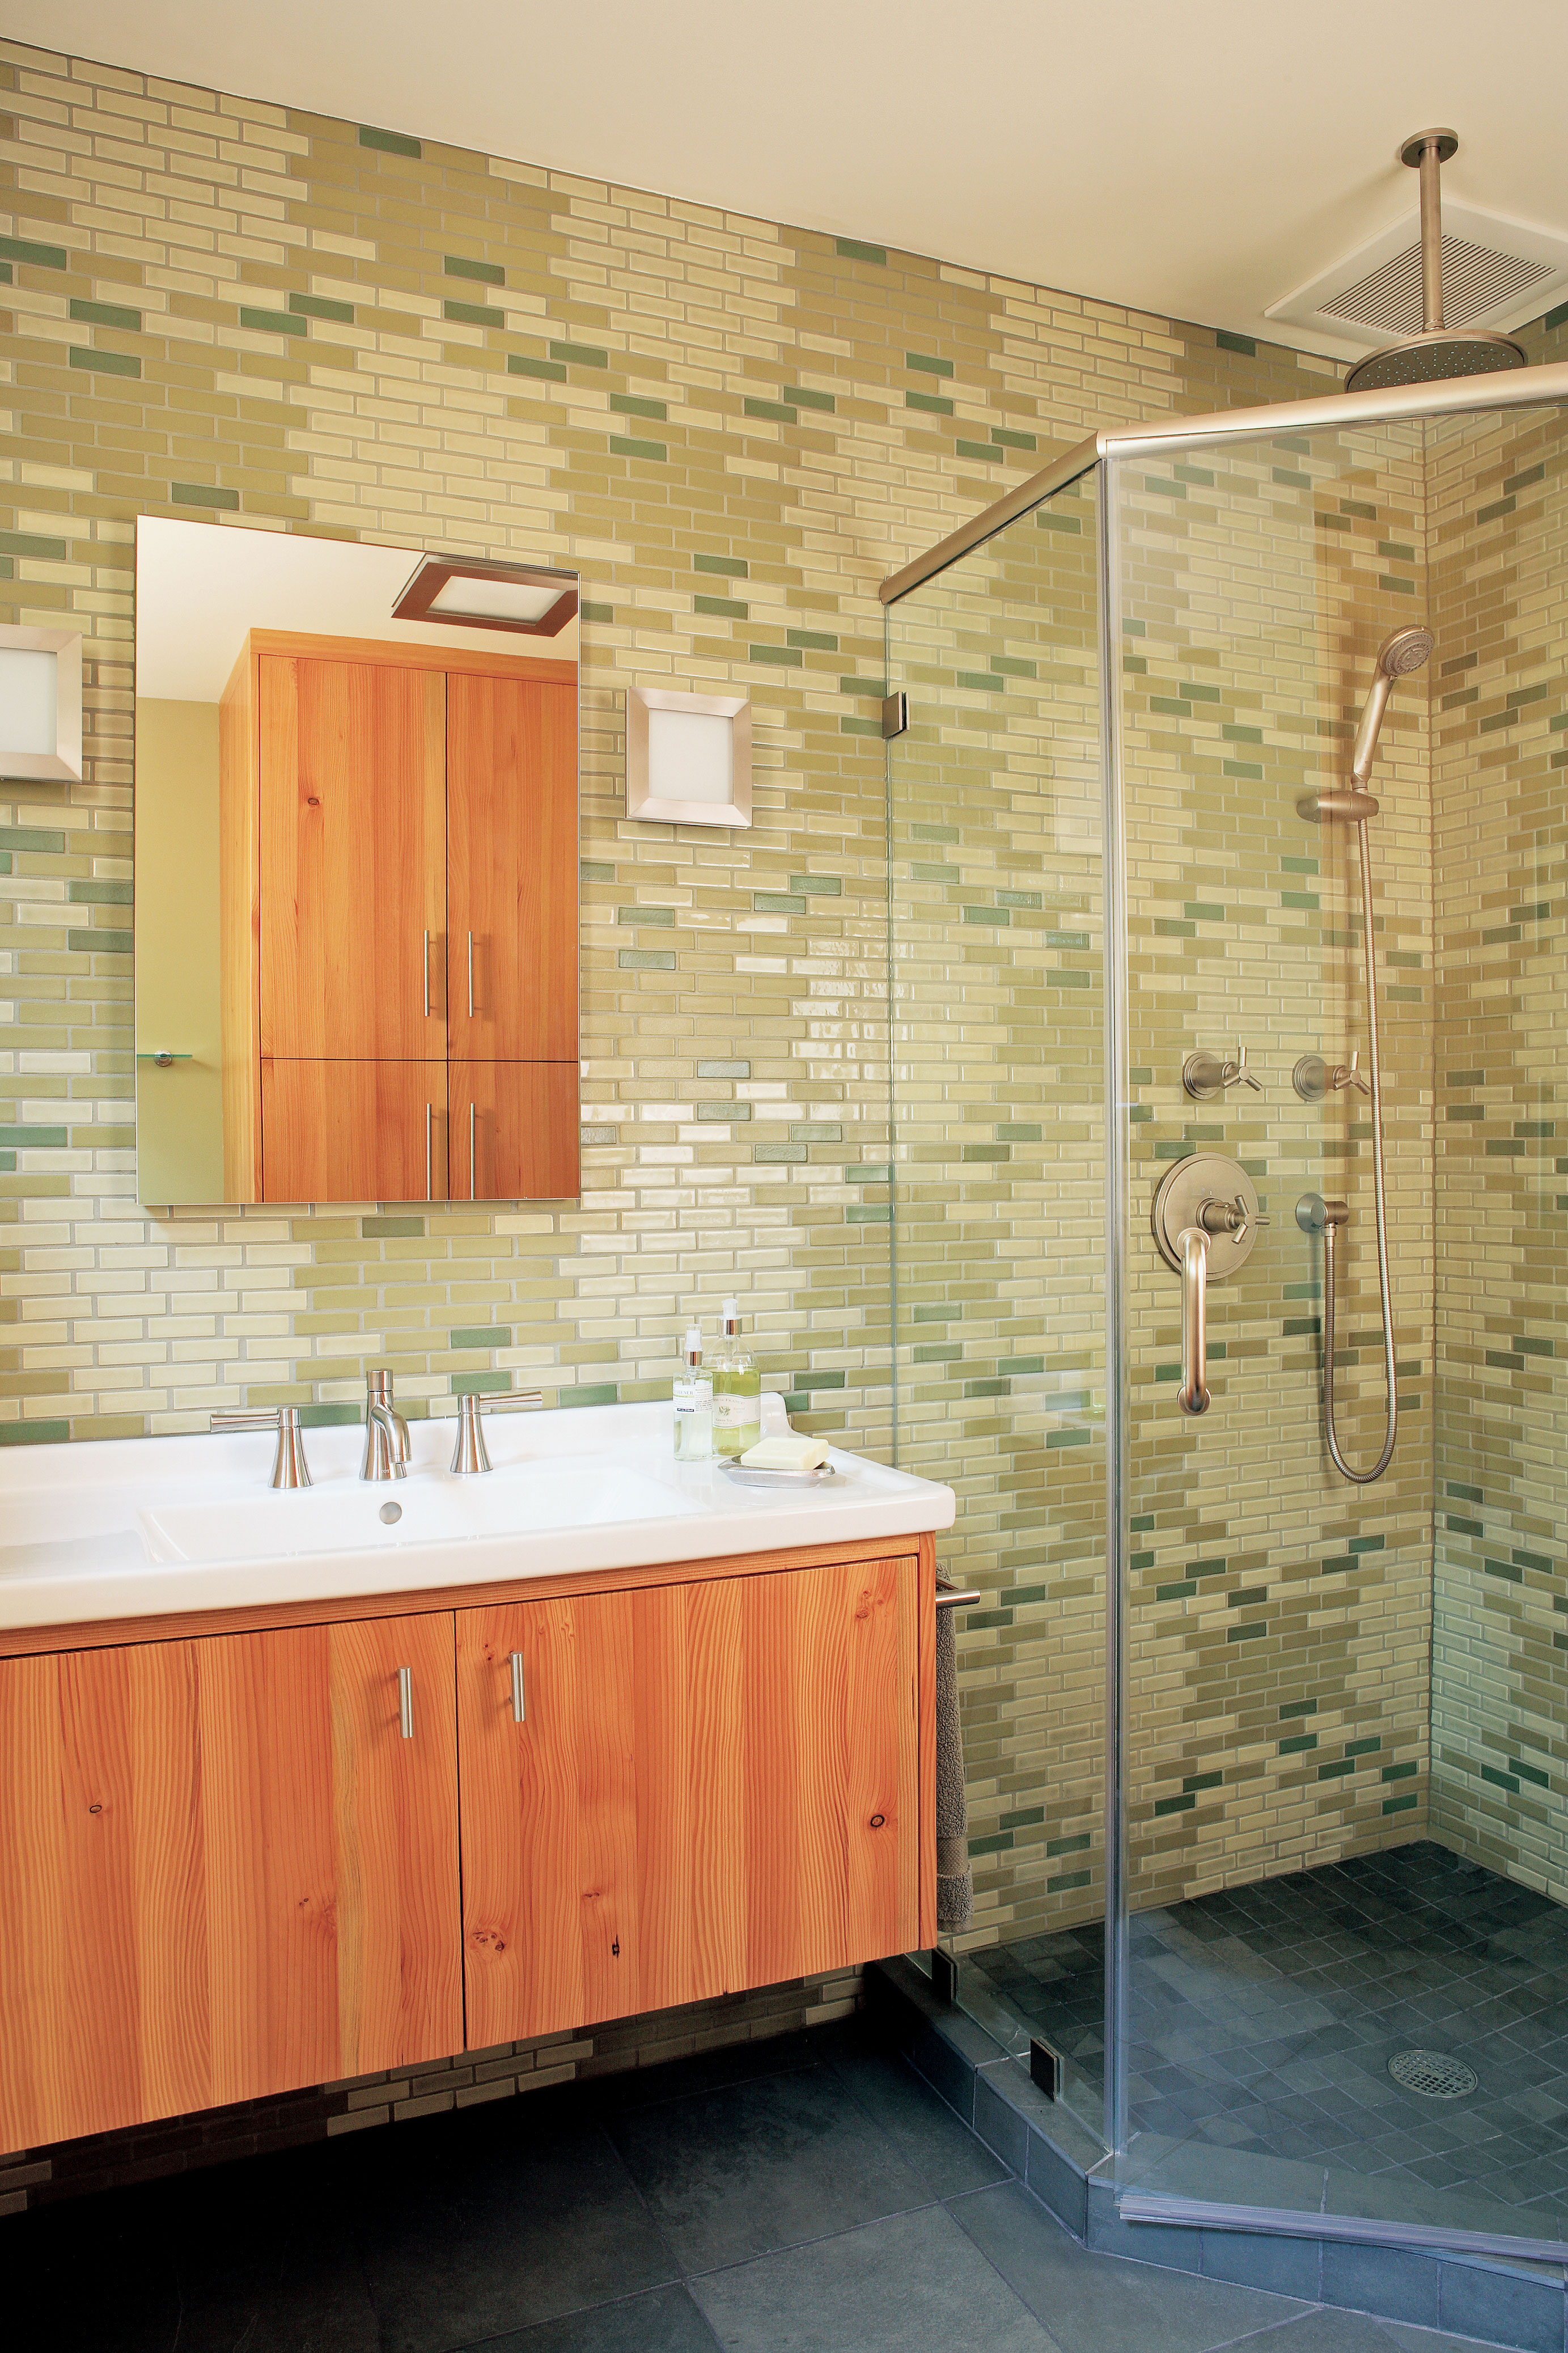 rooms designs videos hgtv trends and bathroom hip tile bathrooms styles design